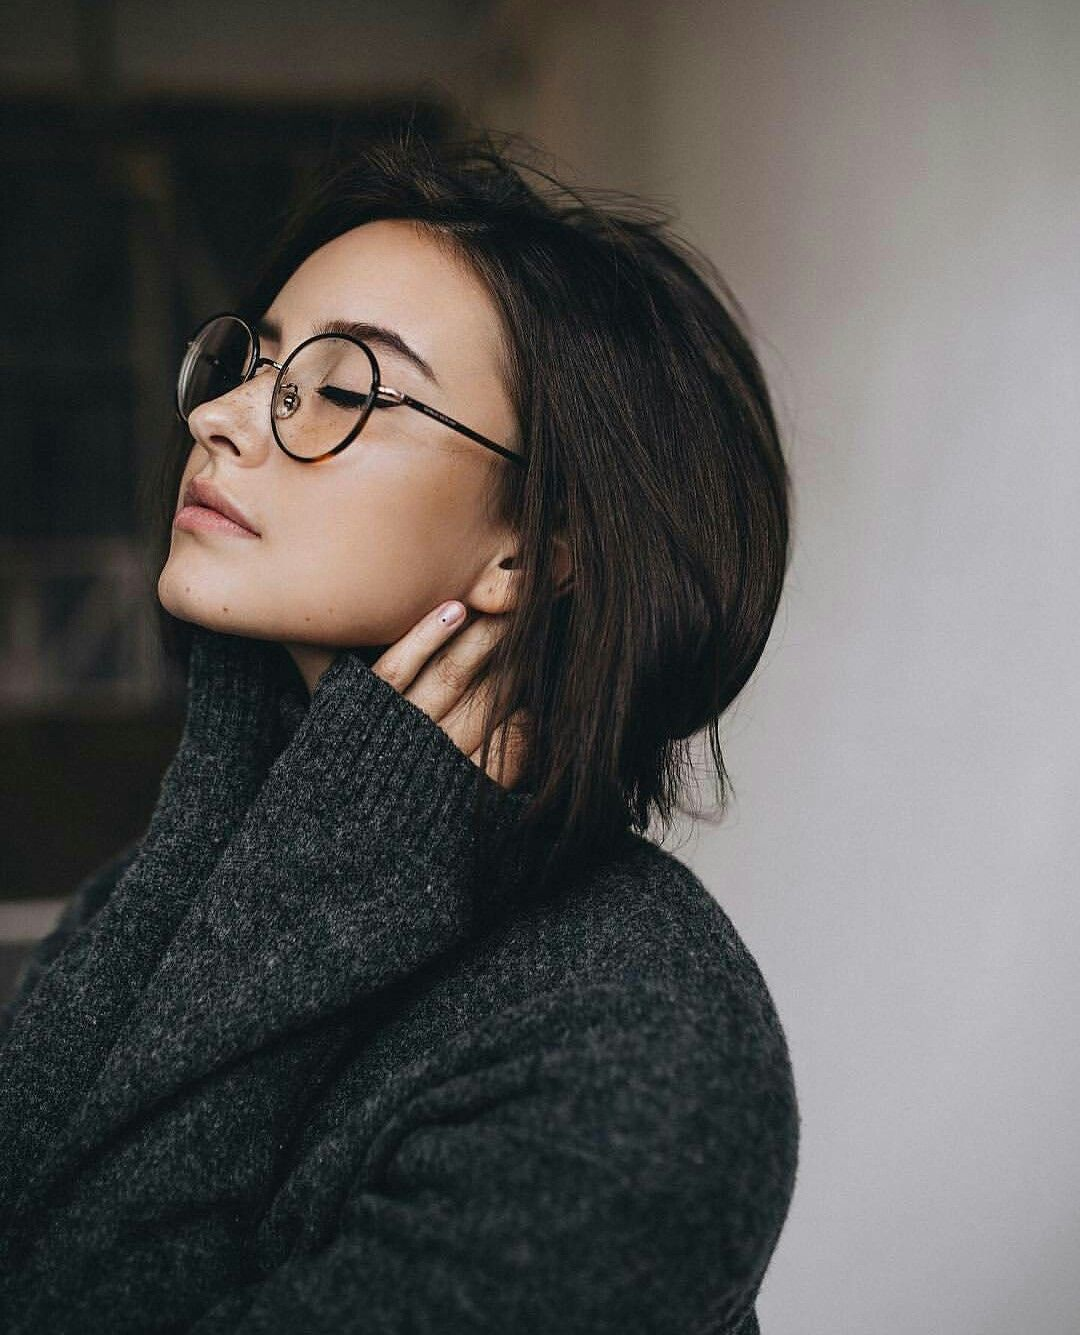 100 Ideeen Over Girls With Glasses Bril Brillen Vrouw